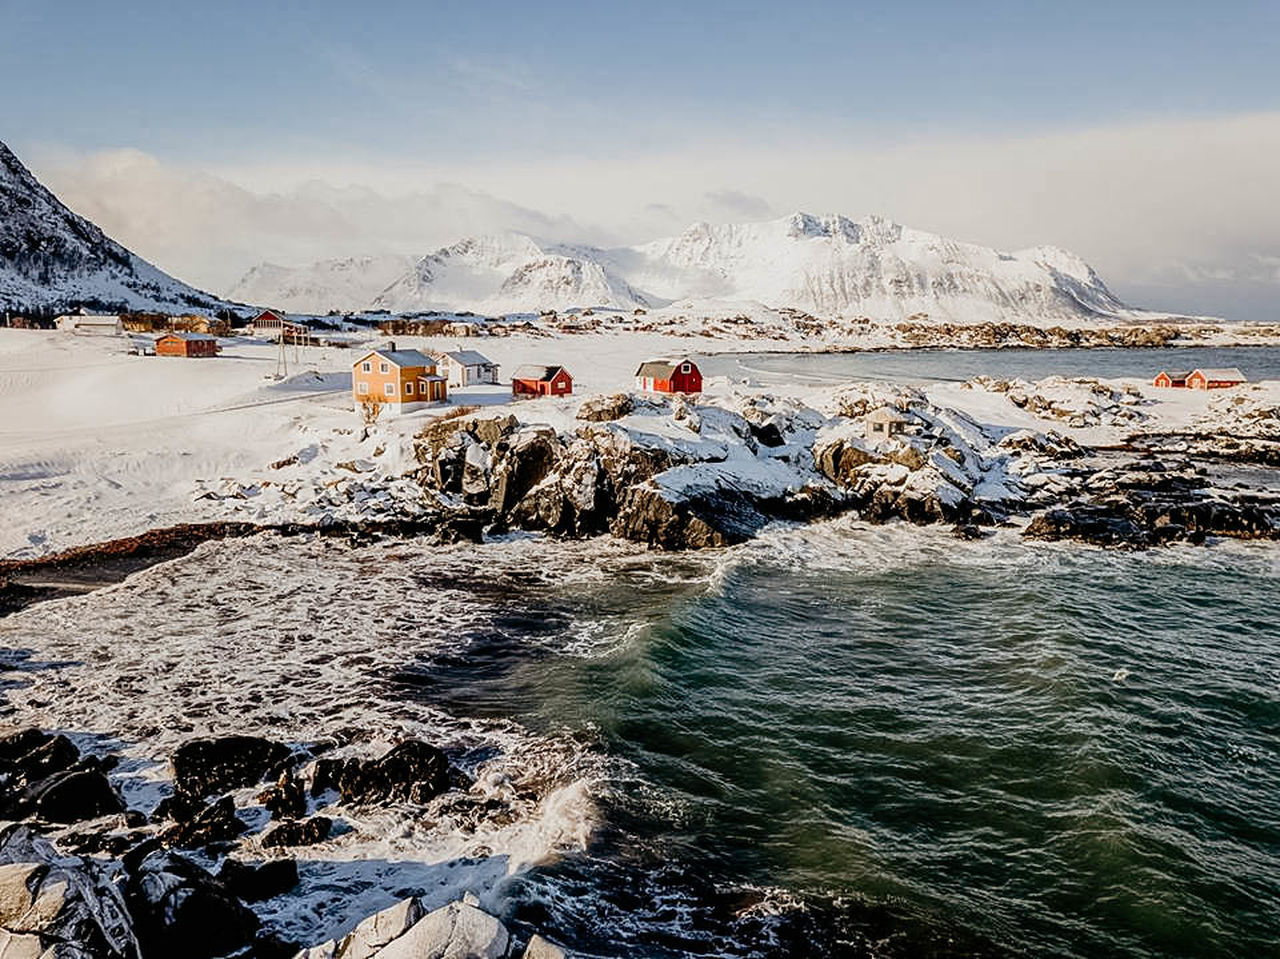 water, winter, mountain, scenics - nature, cold temperature, beauty in nature, snow, sky, nature, day, group of people, real people, sea, rock, motion, mountain range, land, snowcapped mountain, outdoors